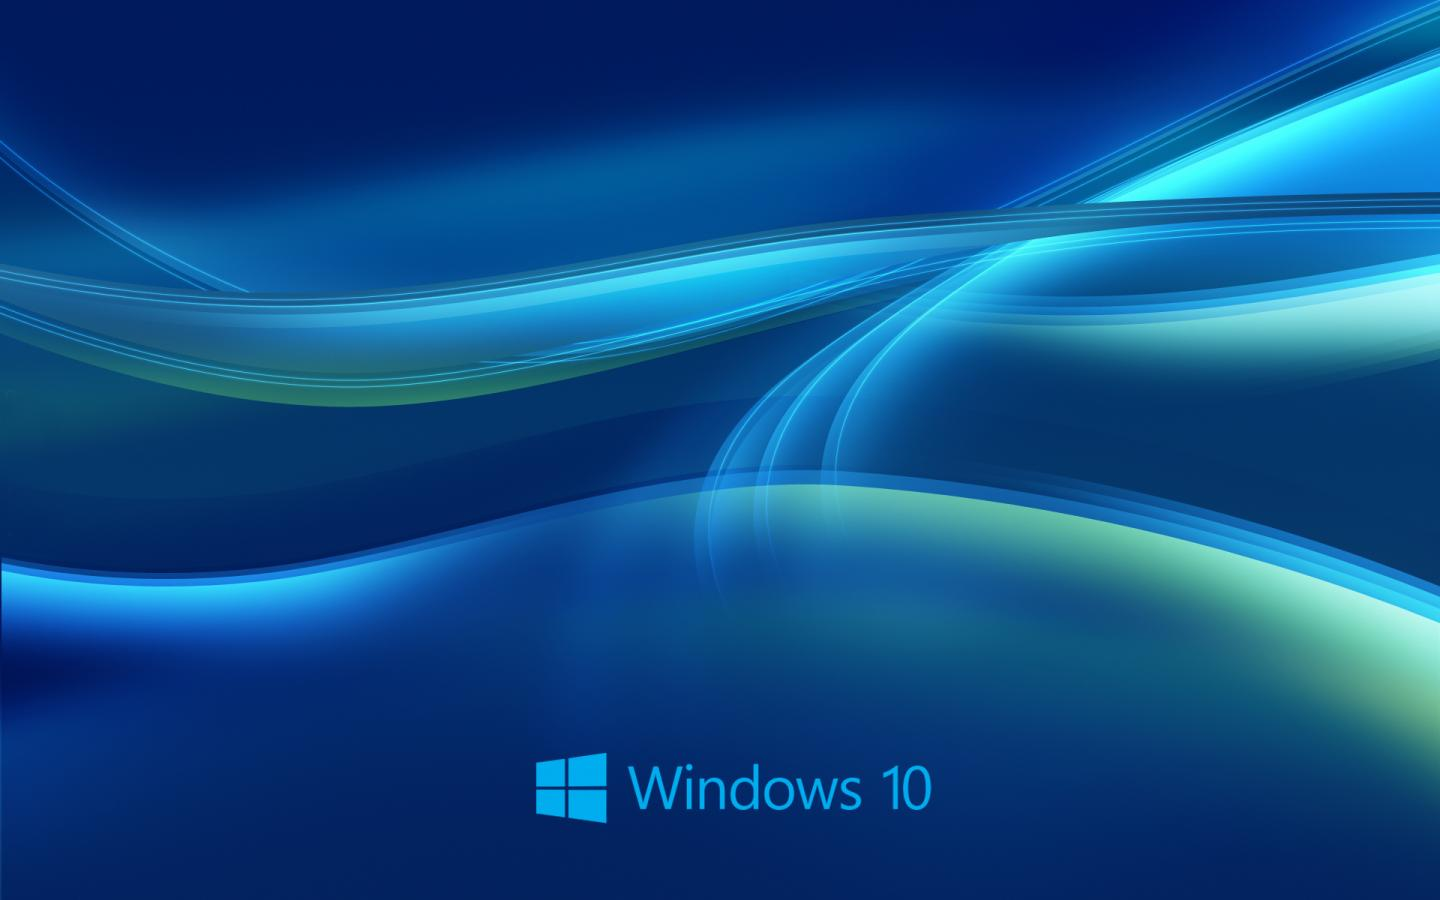 Windows 10 Wallpaper HD In Blue Abstract With New Logo